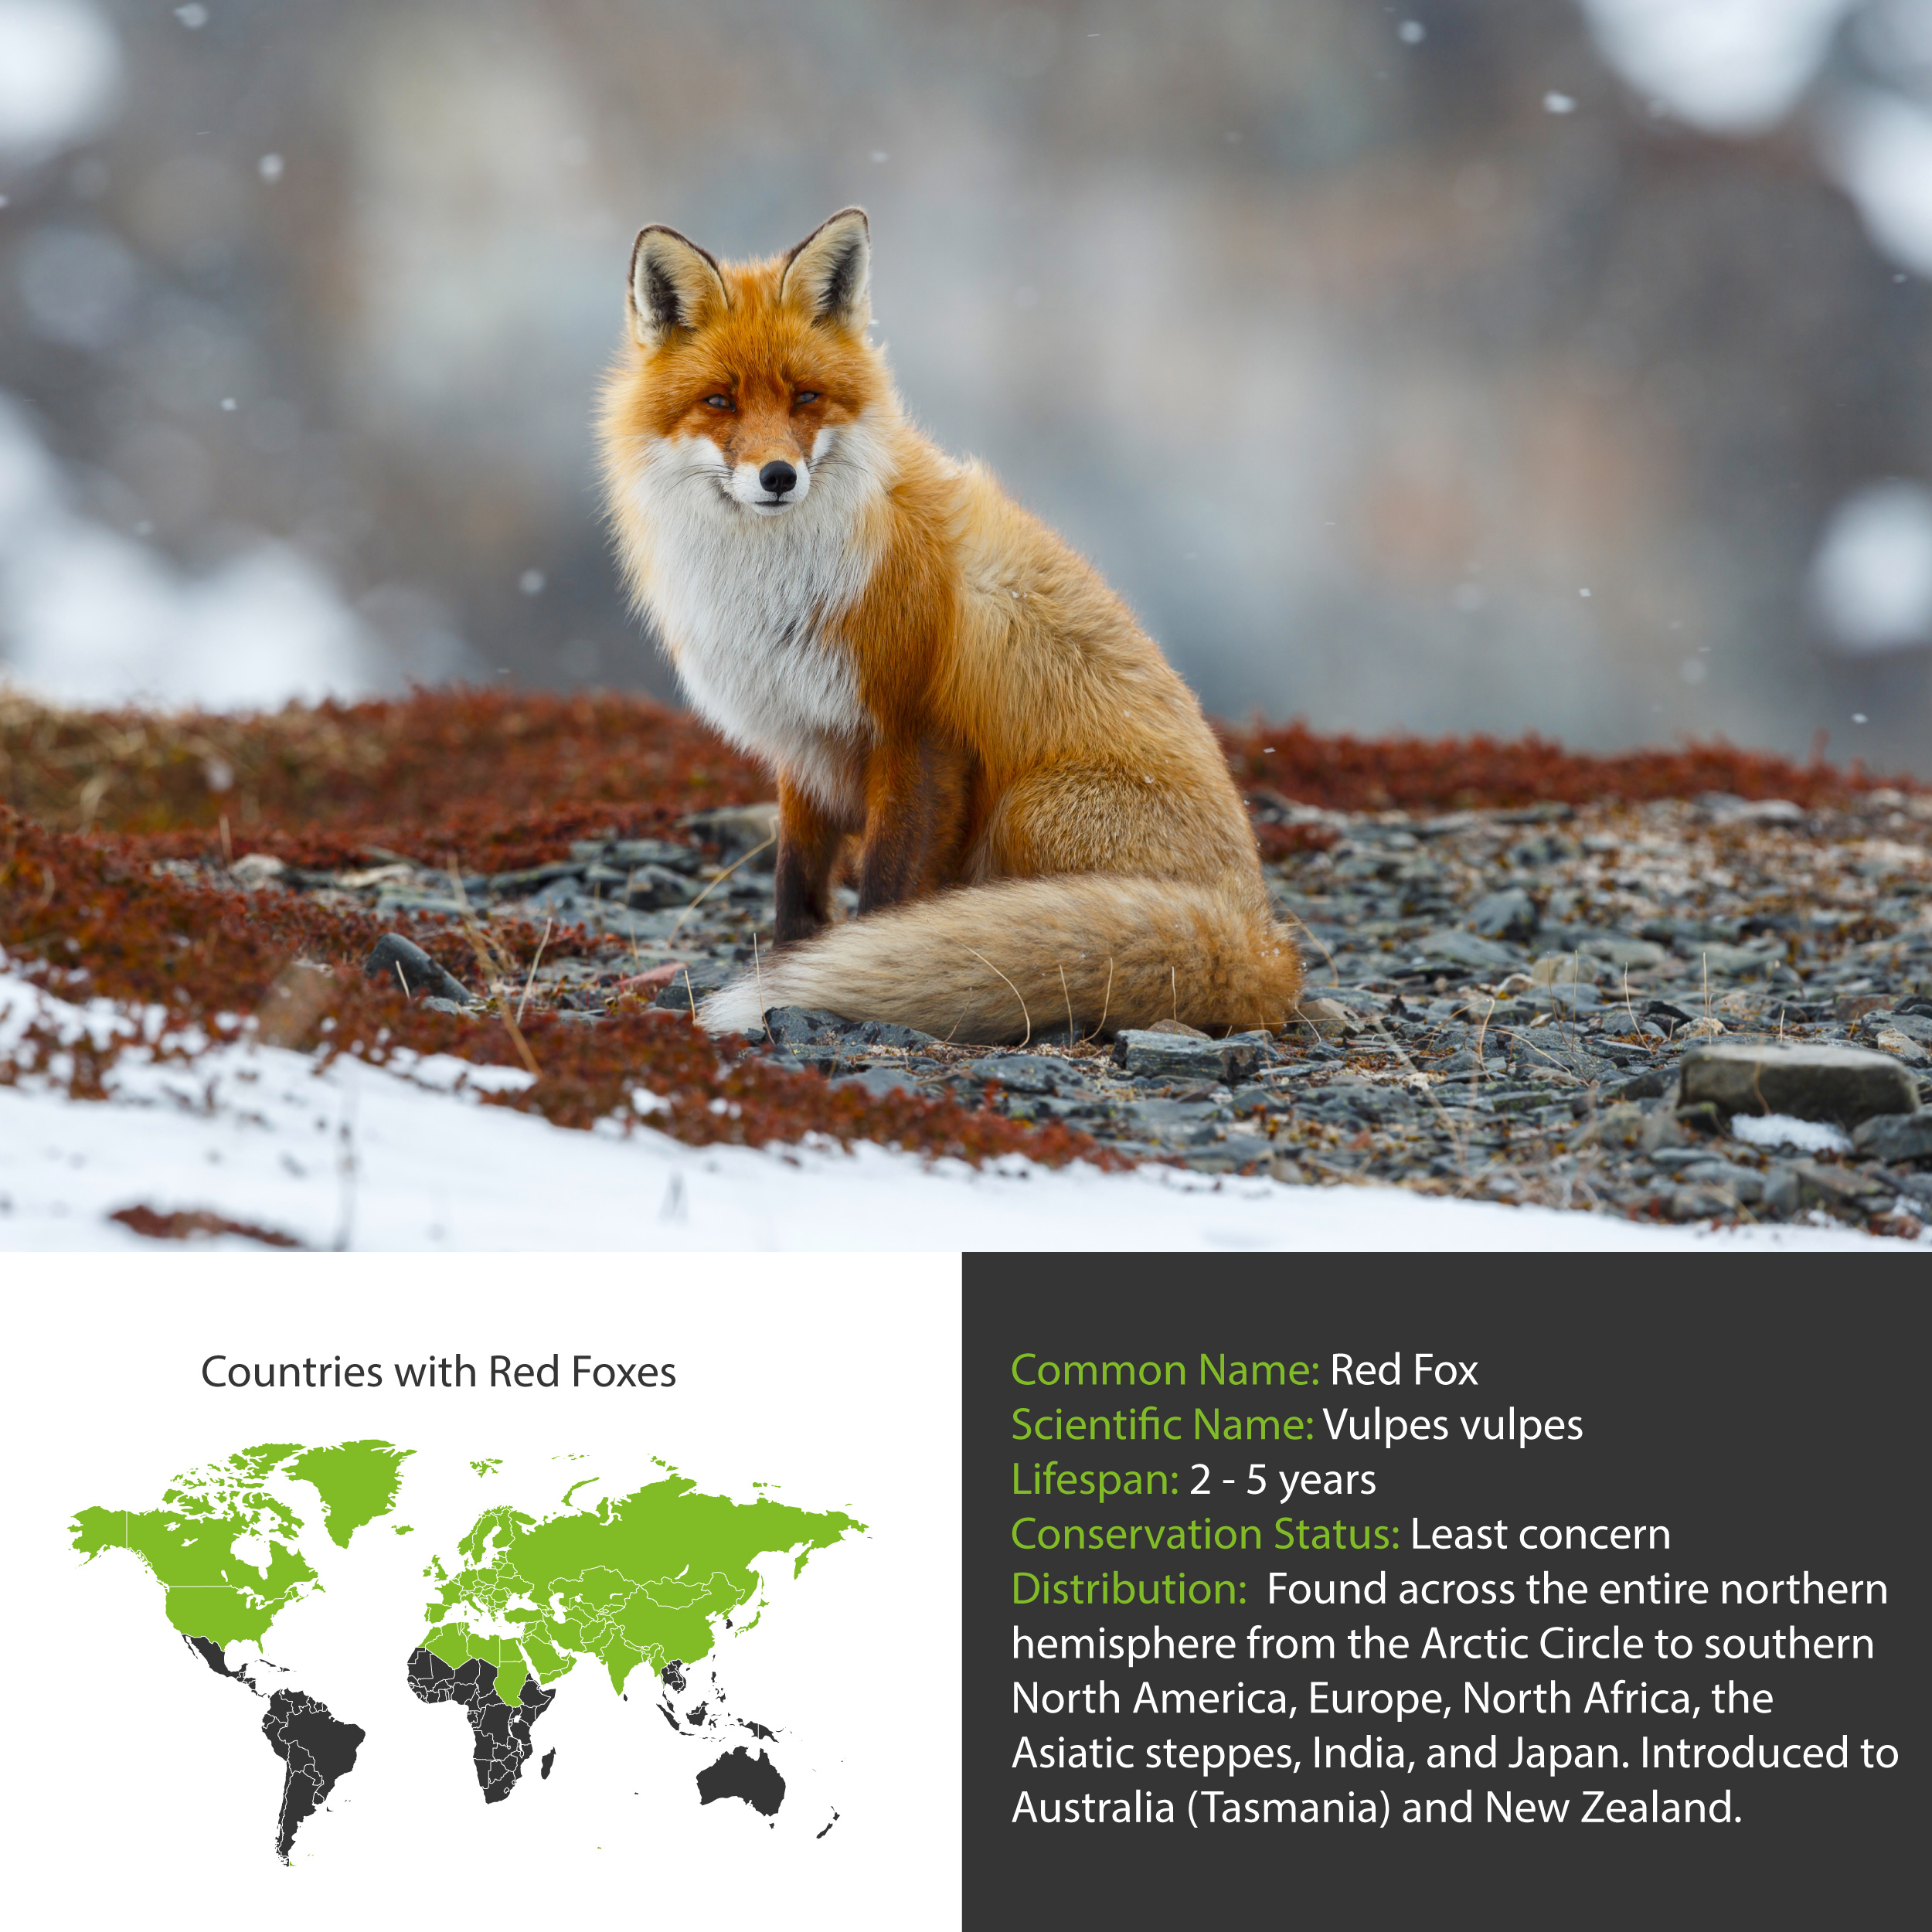 Red Fox Distribution